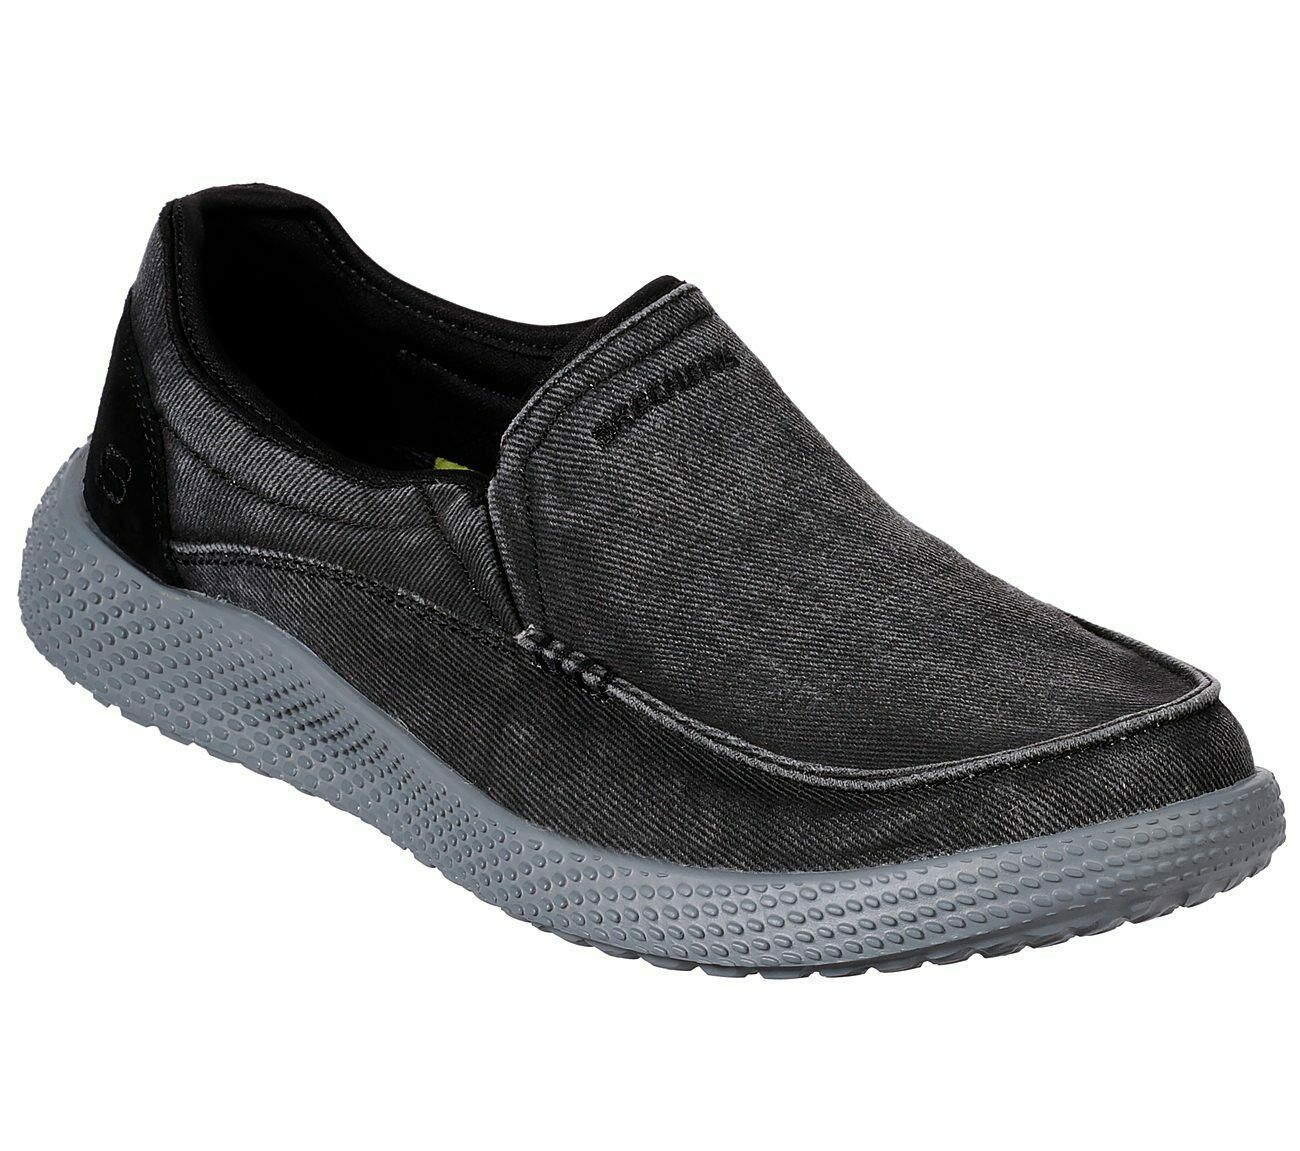 Skechers Black shoes Men Canvas Memory Foam Slip On Comfort Loafer Casual 66019